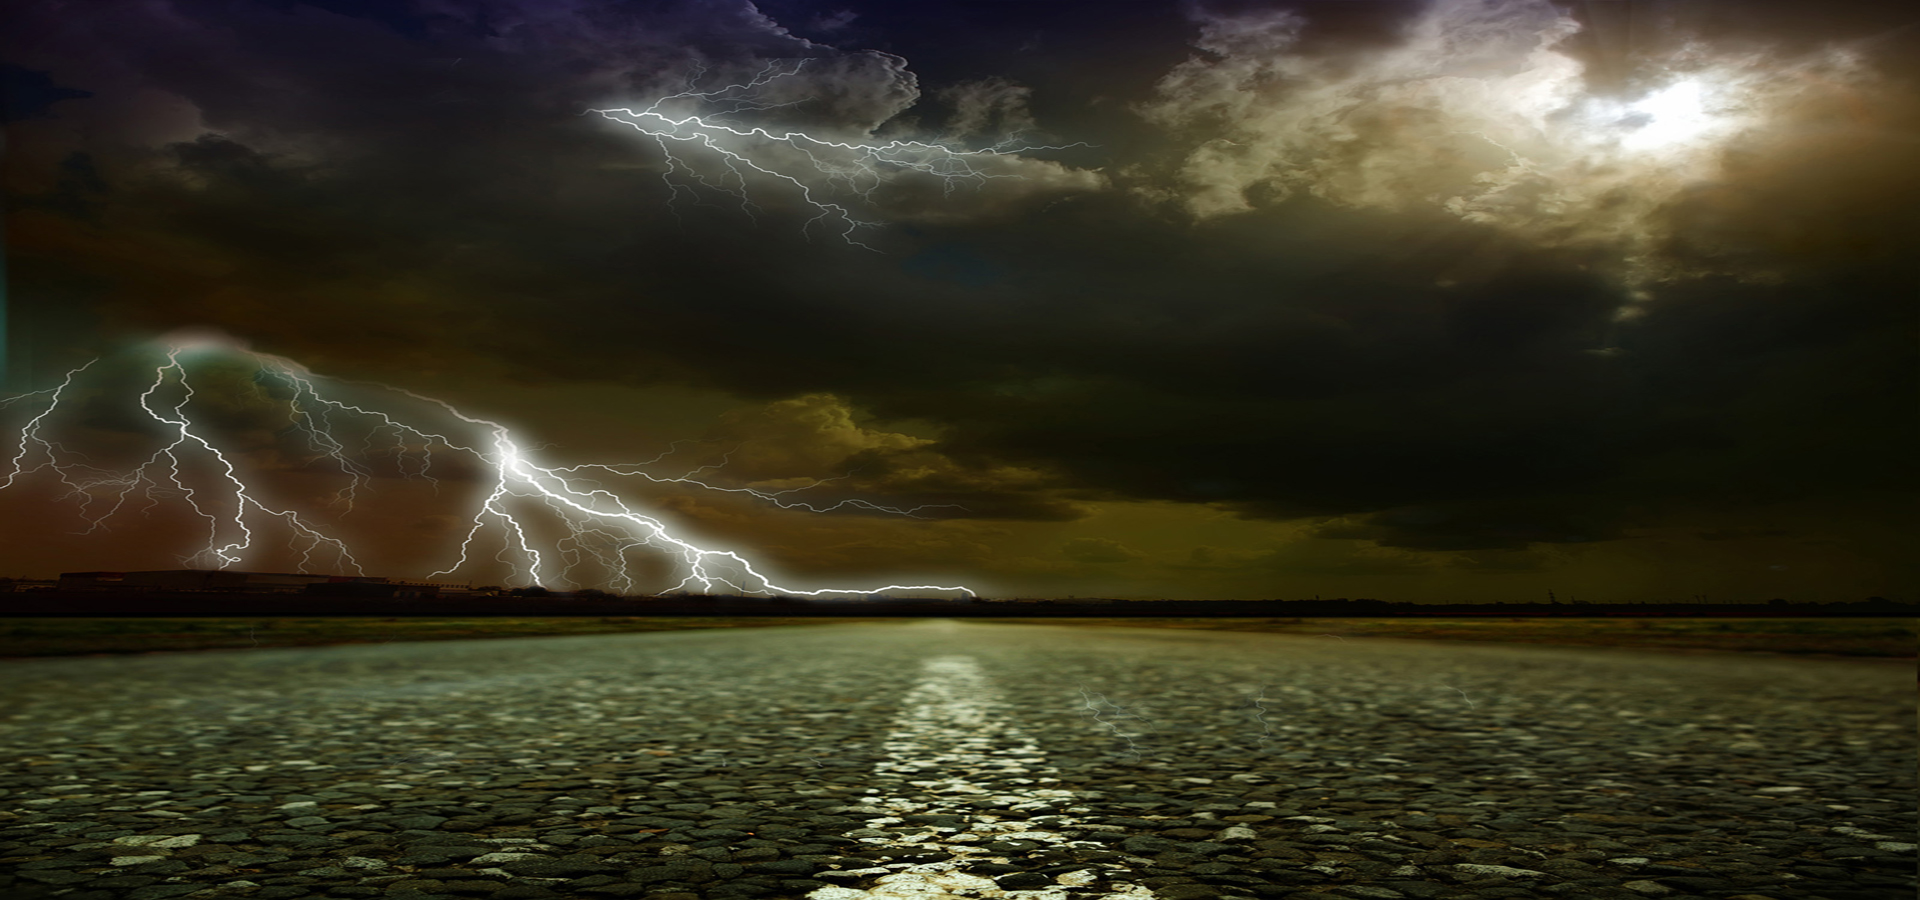 storm comes scenery  lightning  dark  clouds background image for free download